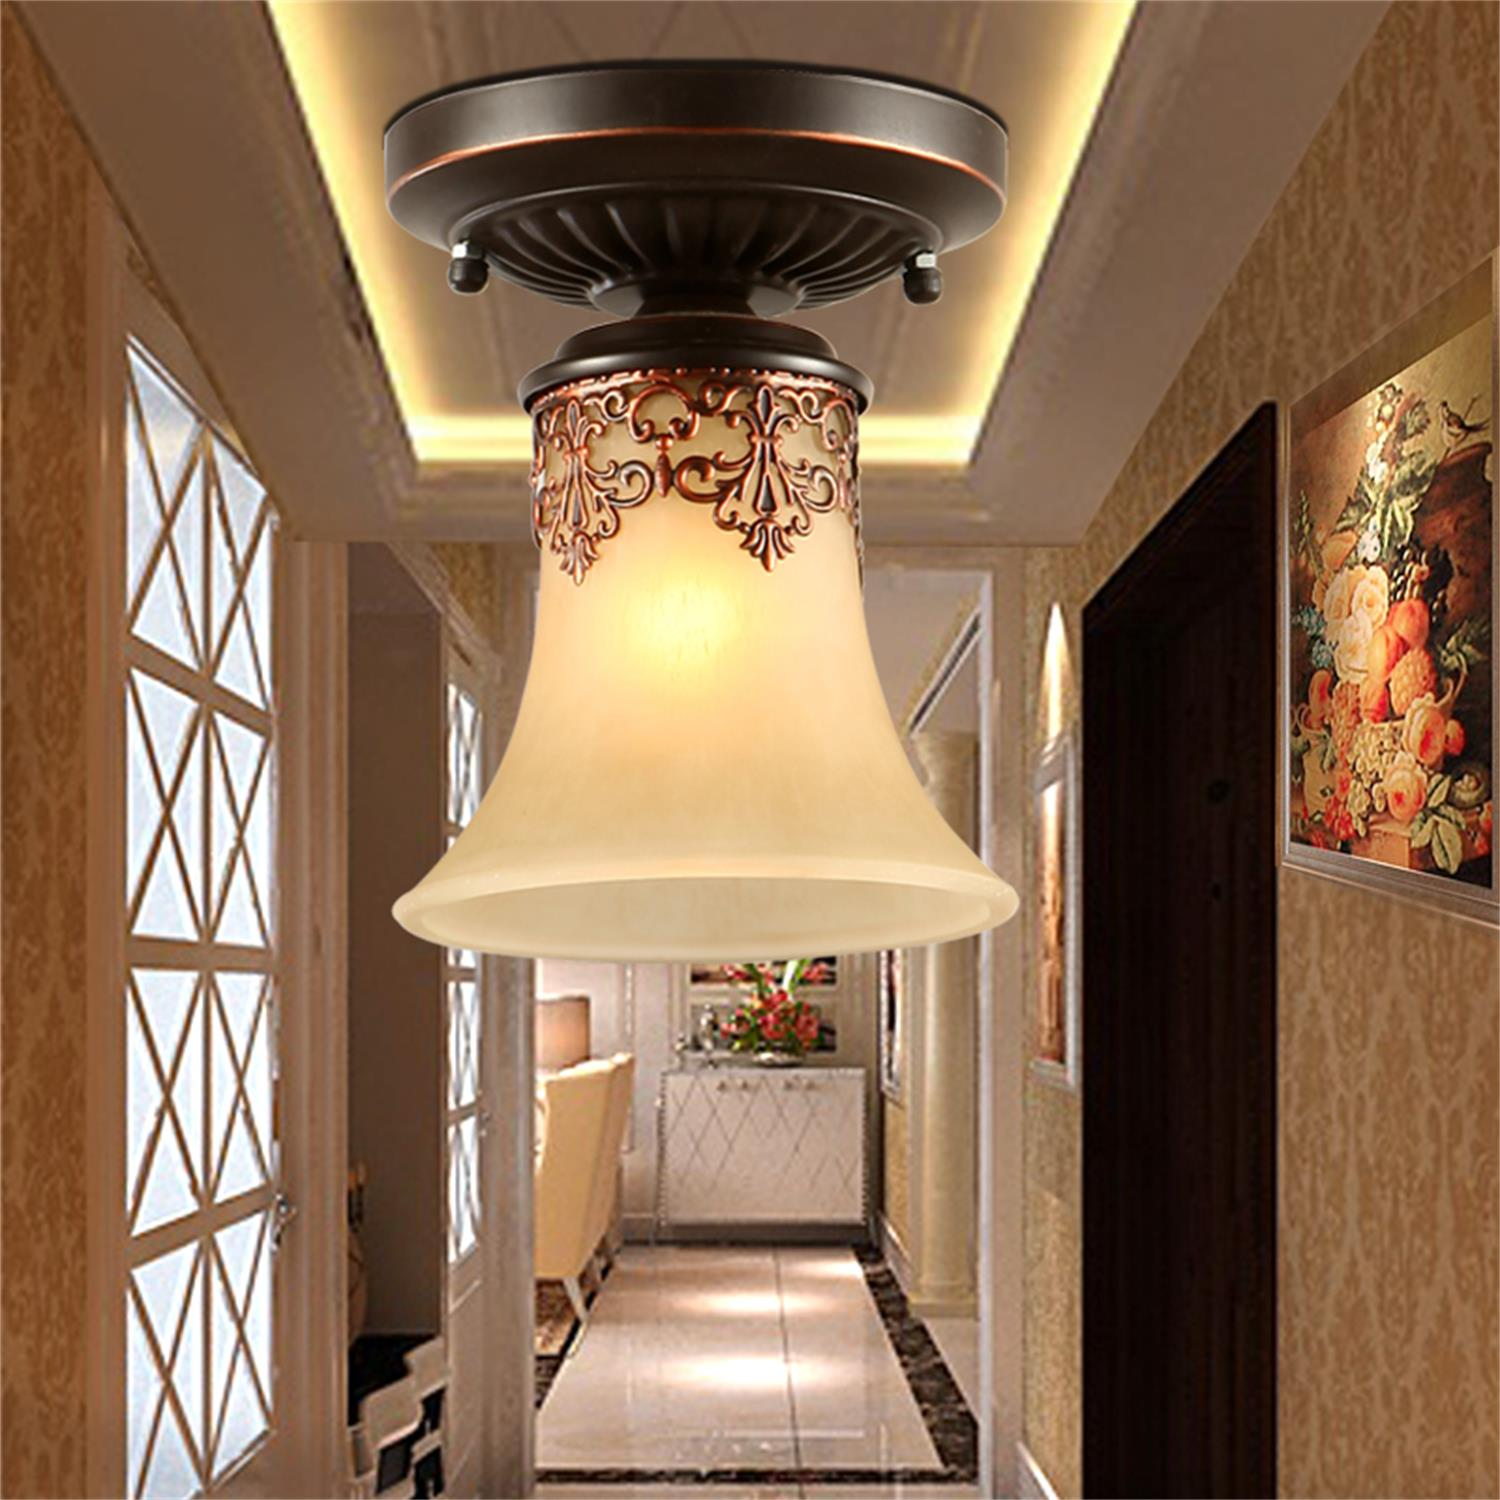 The Living Room W1: Vintage Chandelier Pendant Lamp Lighting Small Ceiling